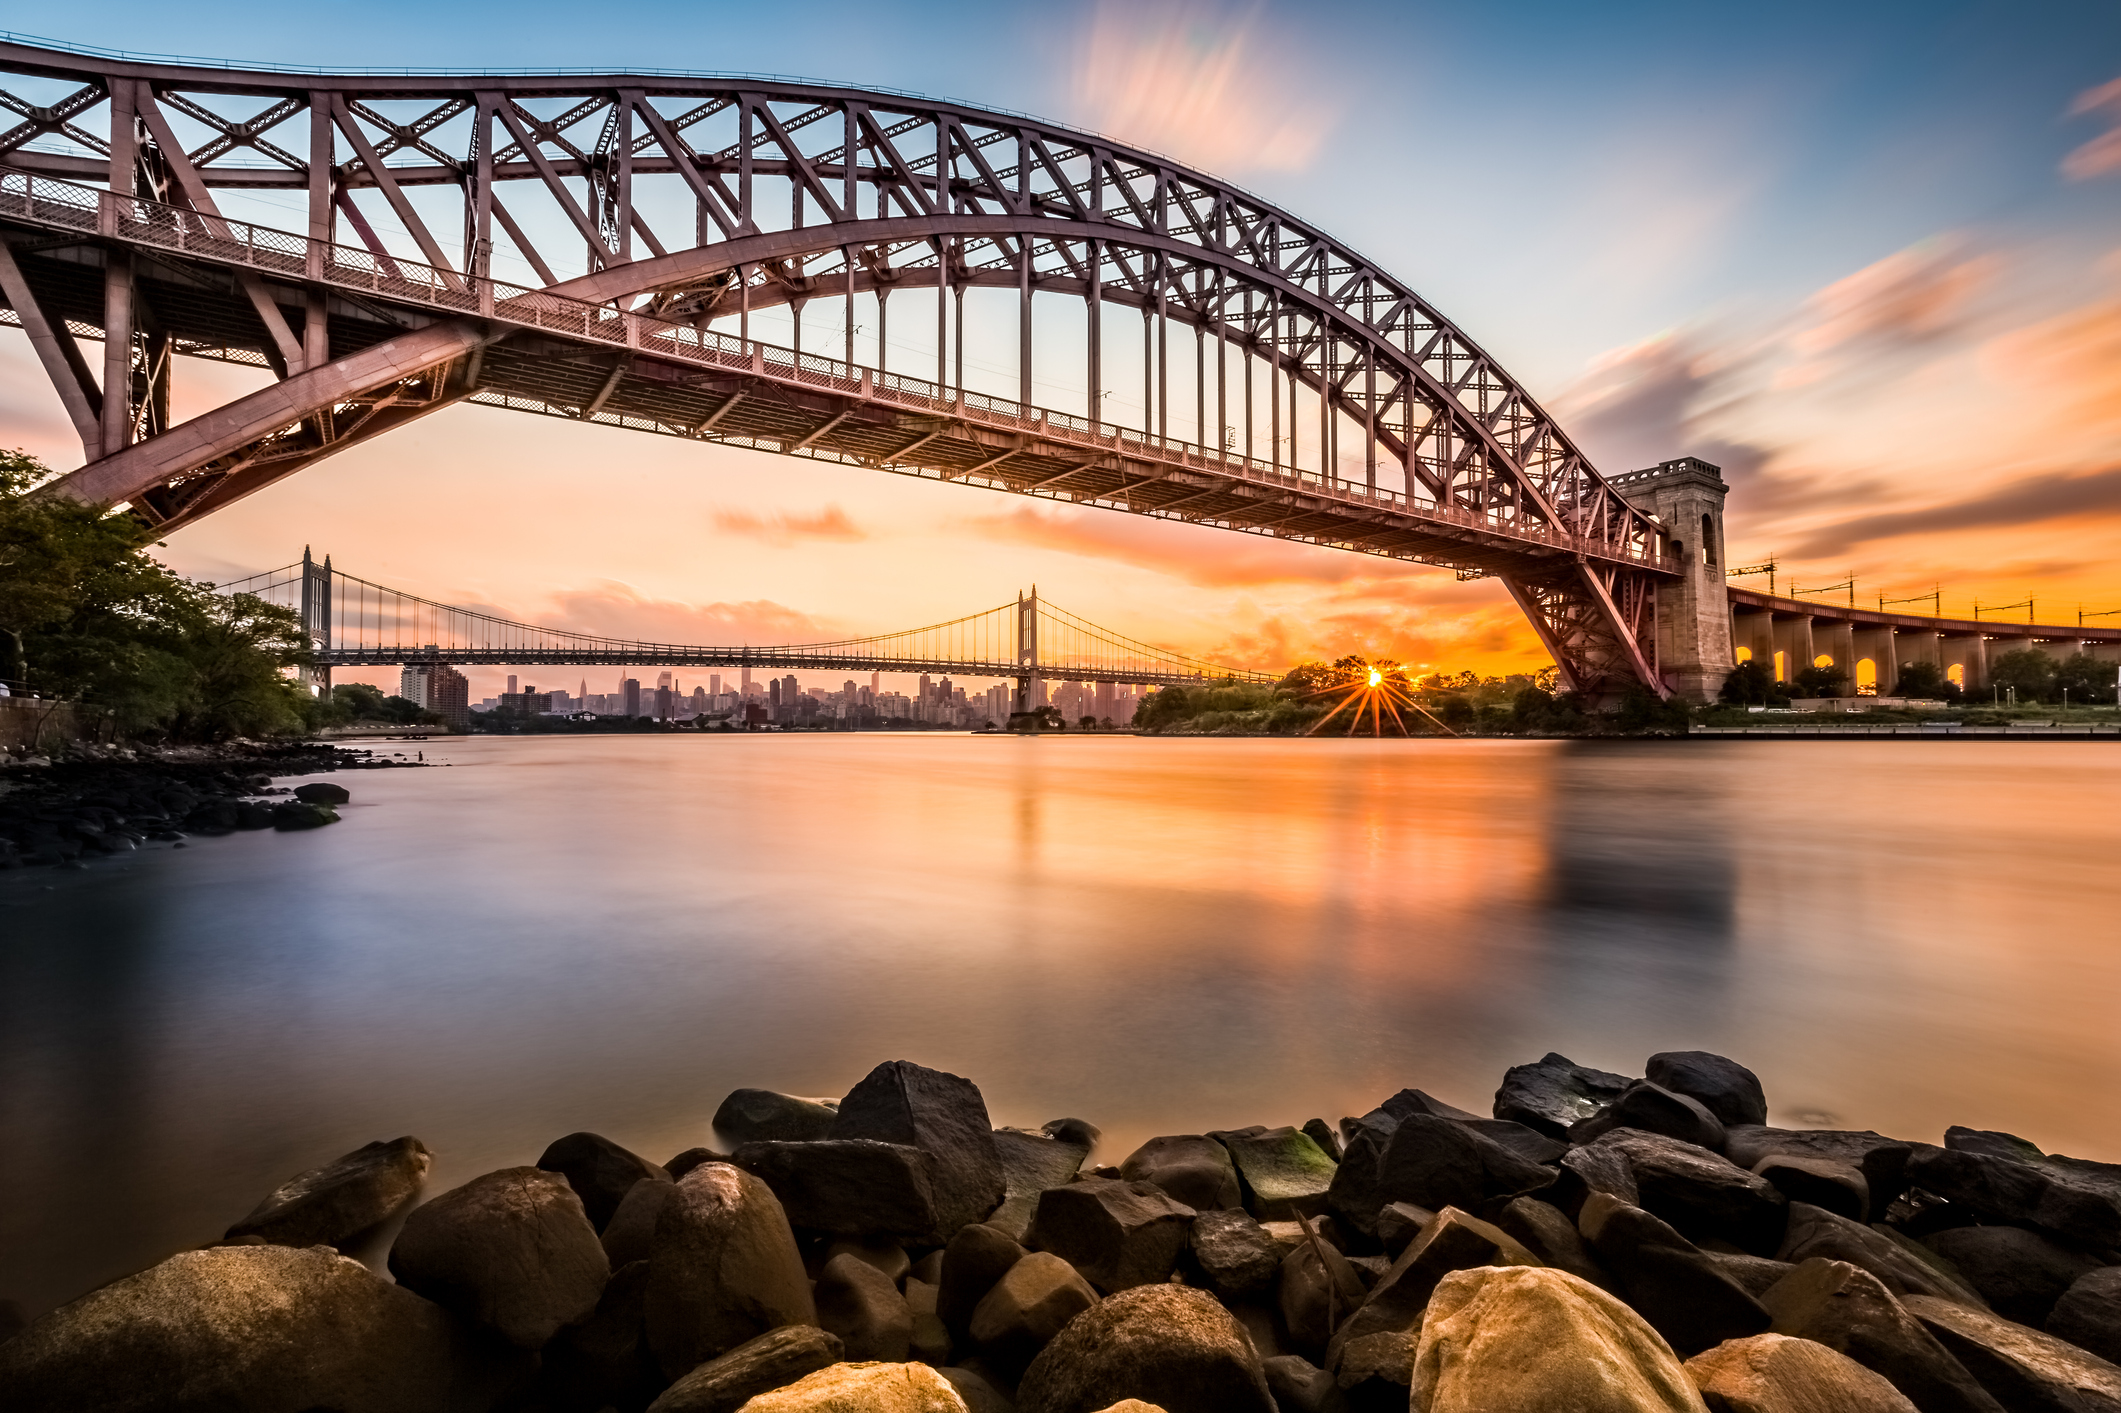 Hell Gate and Triboro bridge at sunset, in Astoria, Queens, New York